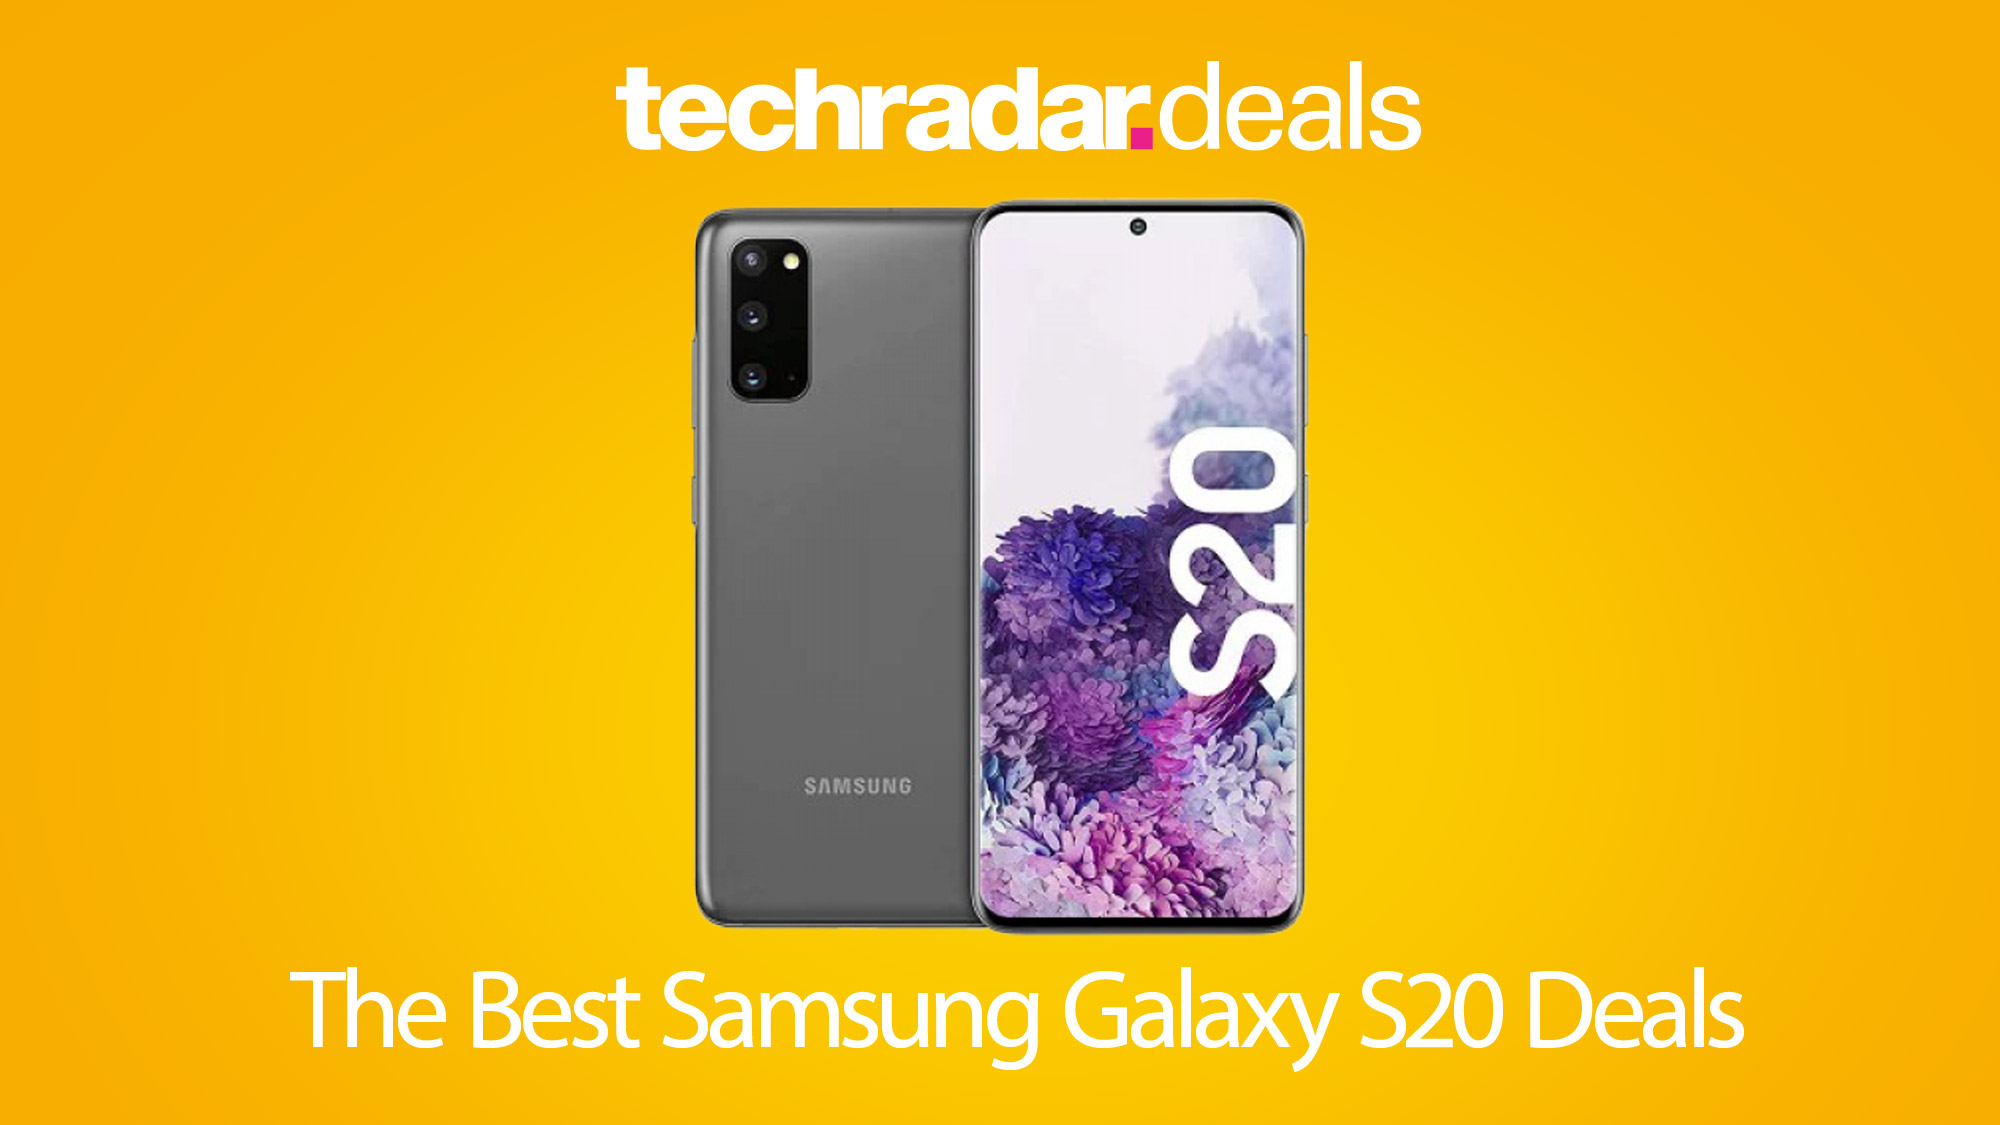 The Best Samsung Galaxy S20 Deals For Black Friday And Cyber Monday 2020 Techradar